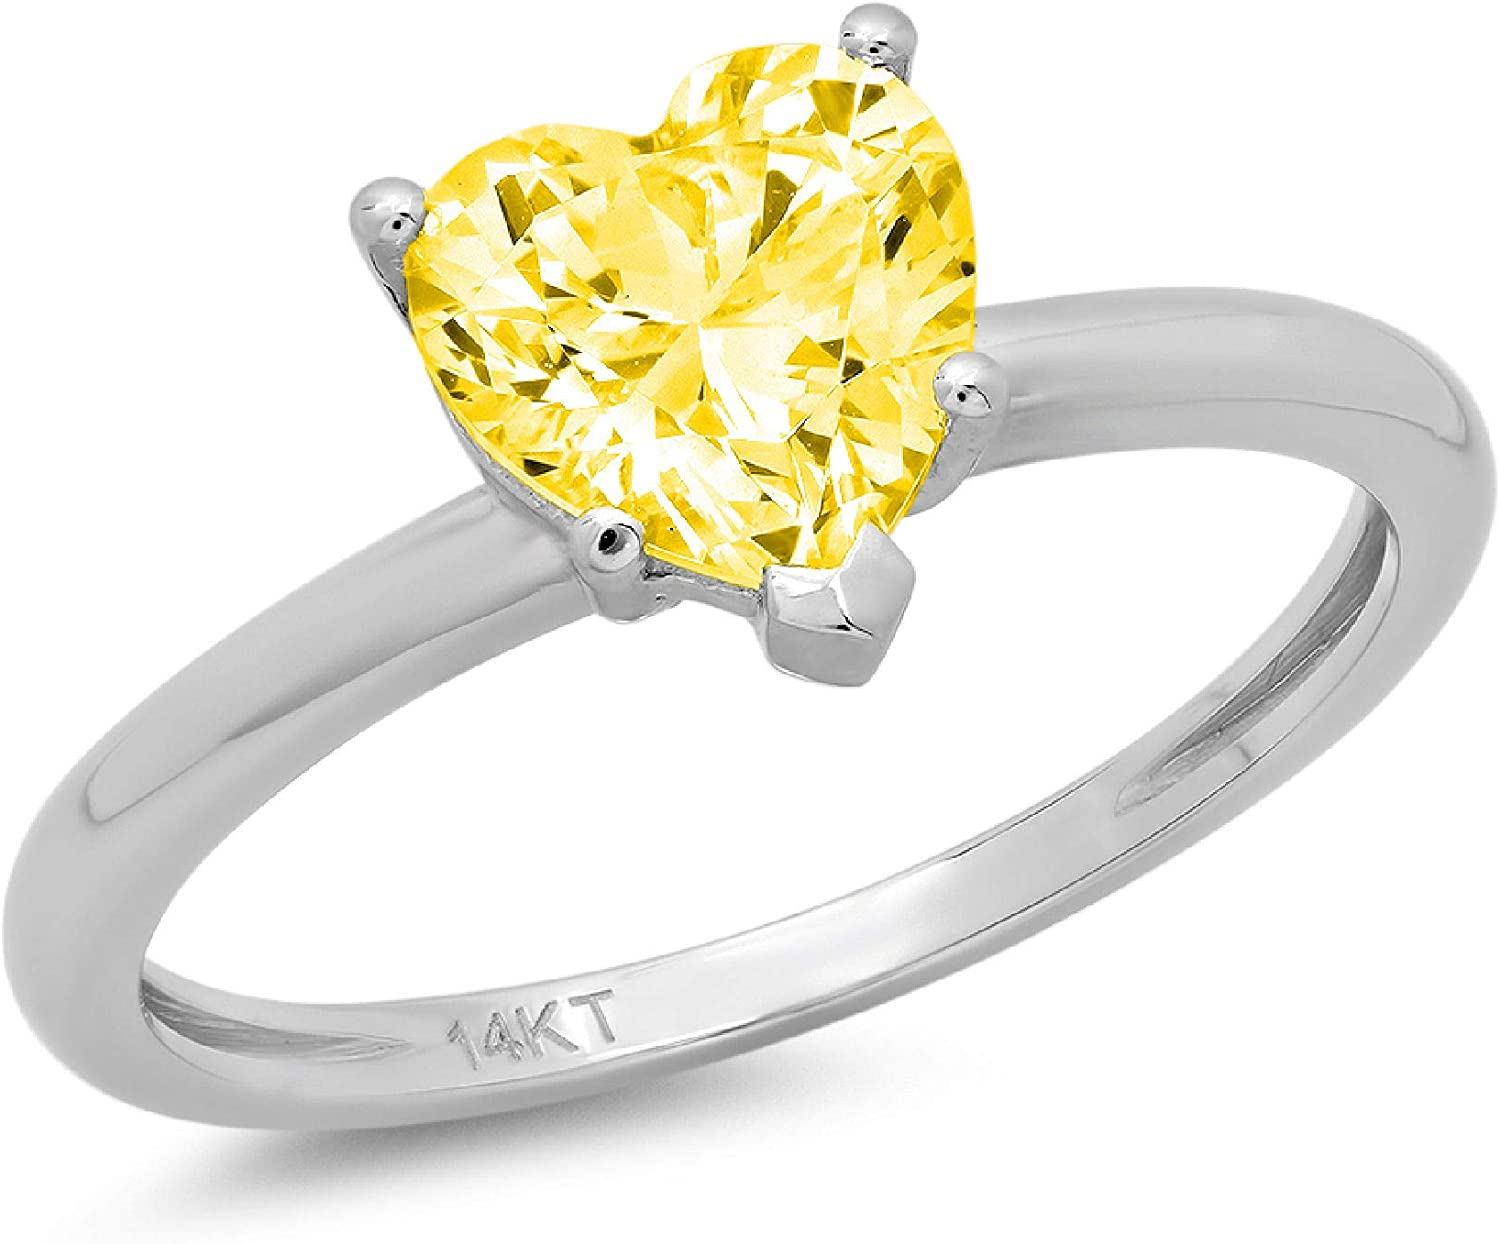 Clara Pucci 1.0 ct Brilliant Heart Cut Solitaire Yellow Simulated Diamond Gem 5-Prong Engagement Wedding Bridal Promise Anniversary Ring Solid 18K White Gold for Women